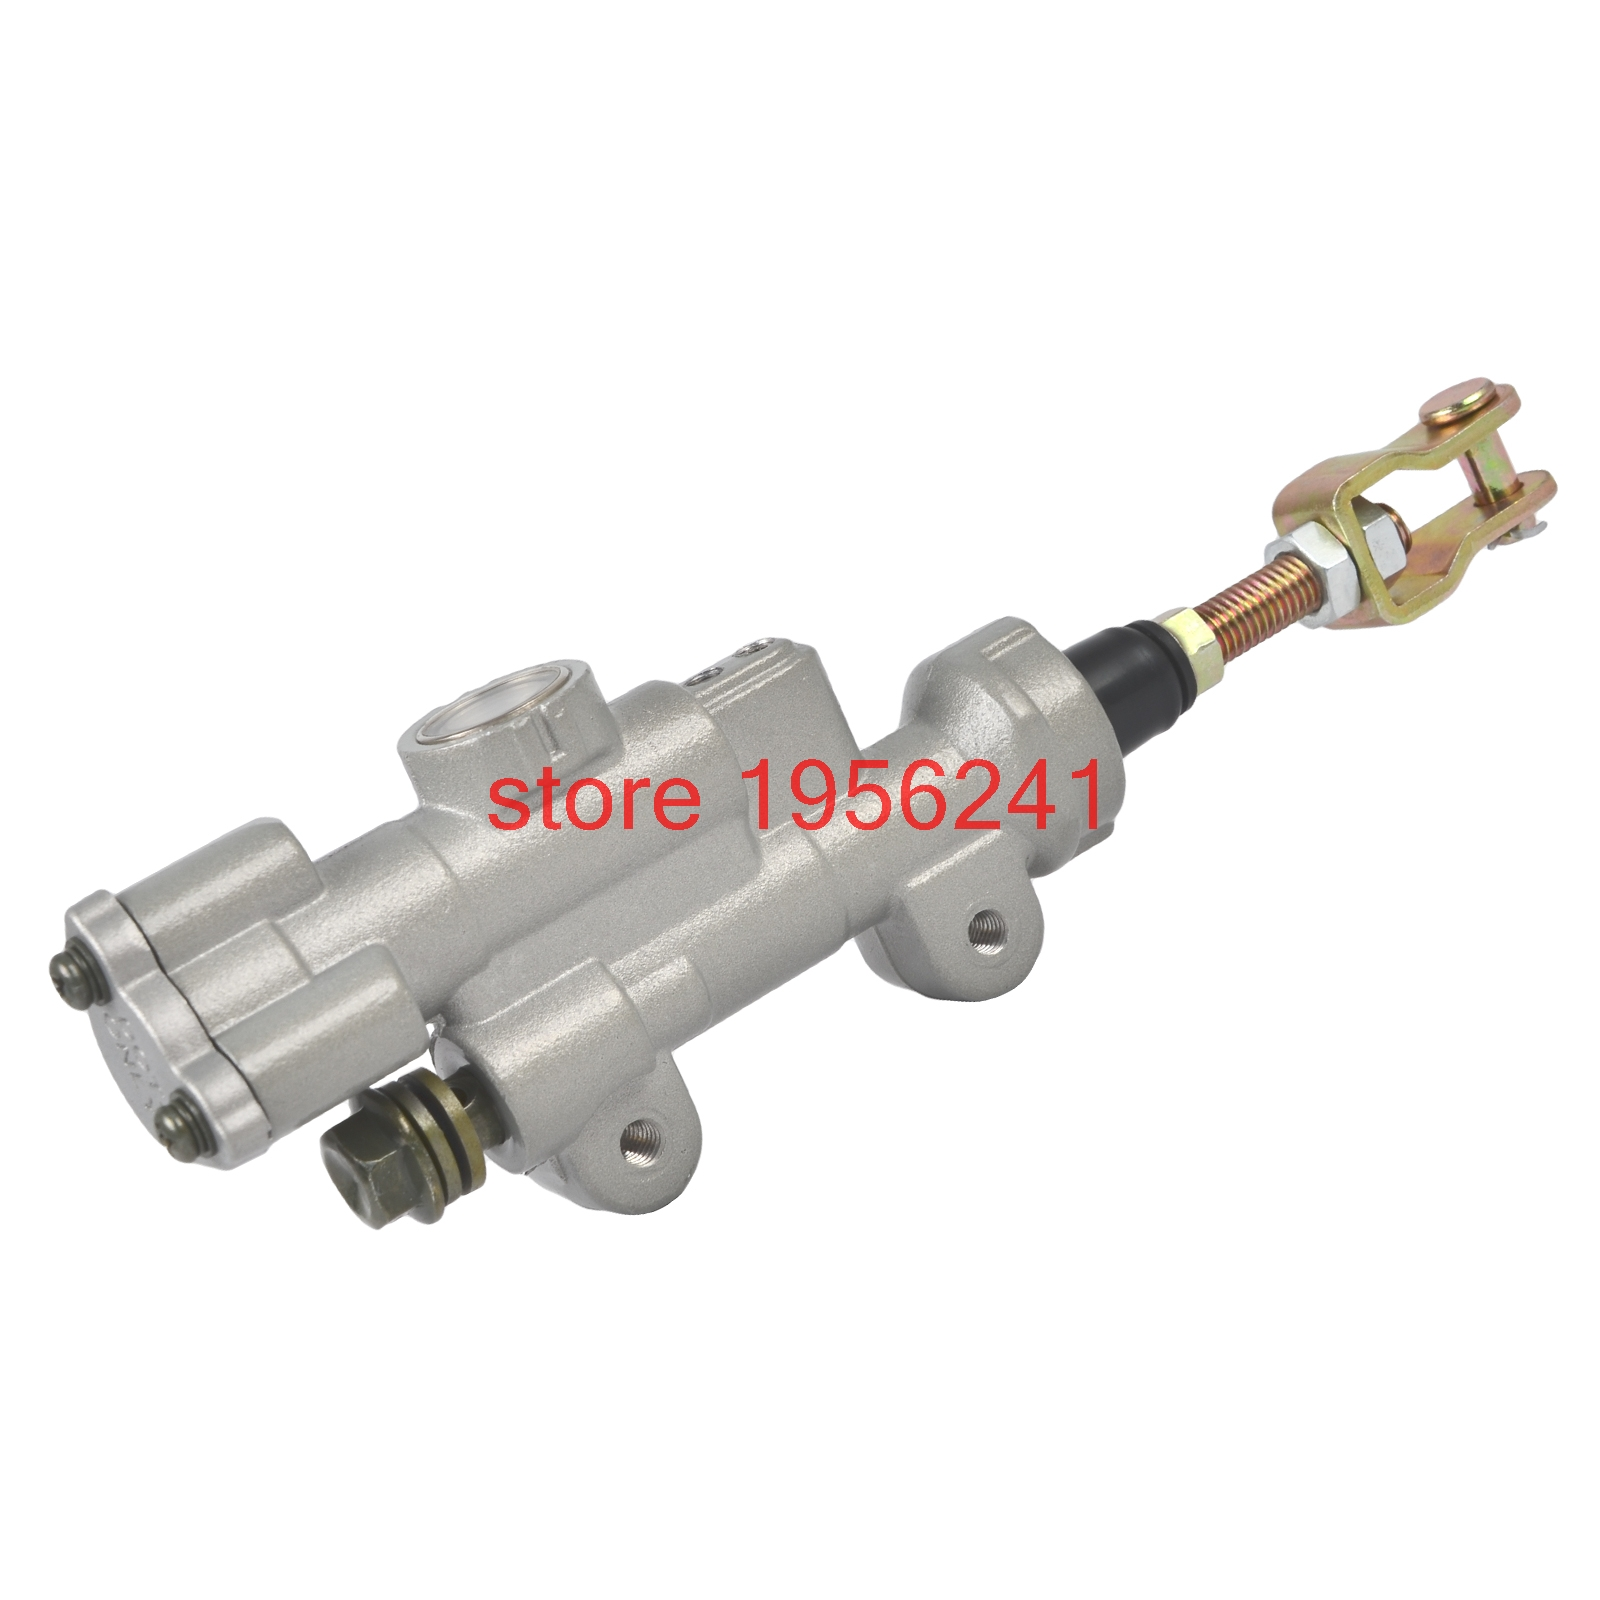 Motorcycle Rear Brake Master Cylinder For Honda CRF450X 2005 - 2015 2006 2007 2008 2010 2012 2014 CRF 450X CRF450 X aftermarket free shipping motorcycle parts eliminator tidy tail for 2006 2007 2008 fz6 fazer 2007 2008b lack